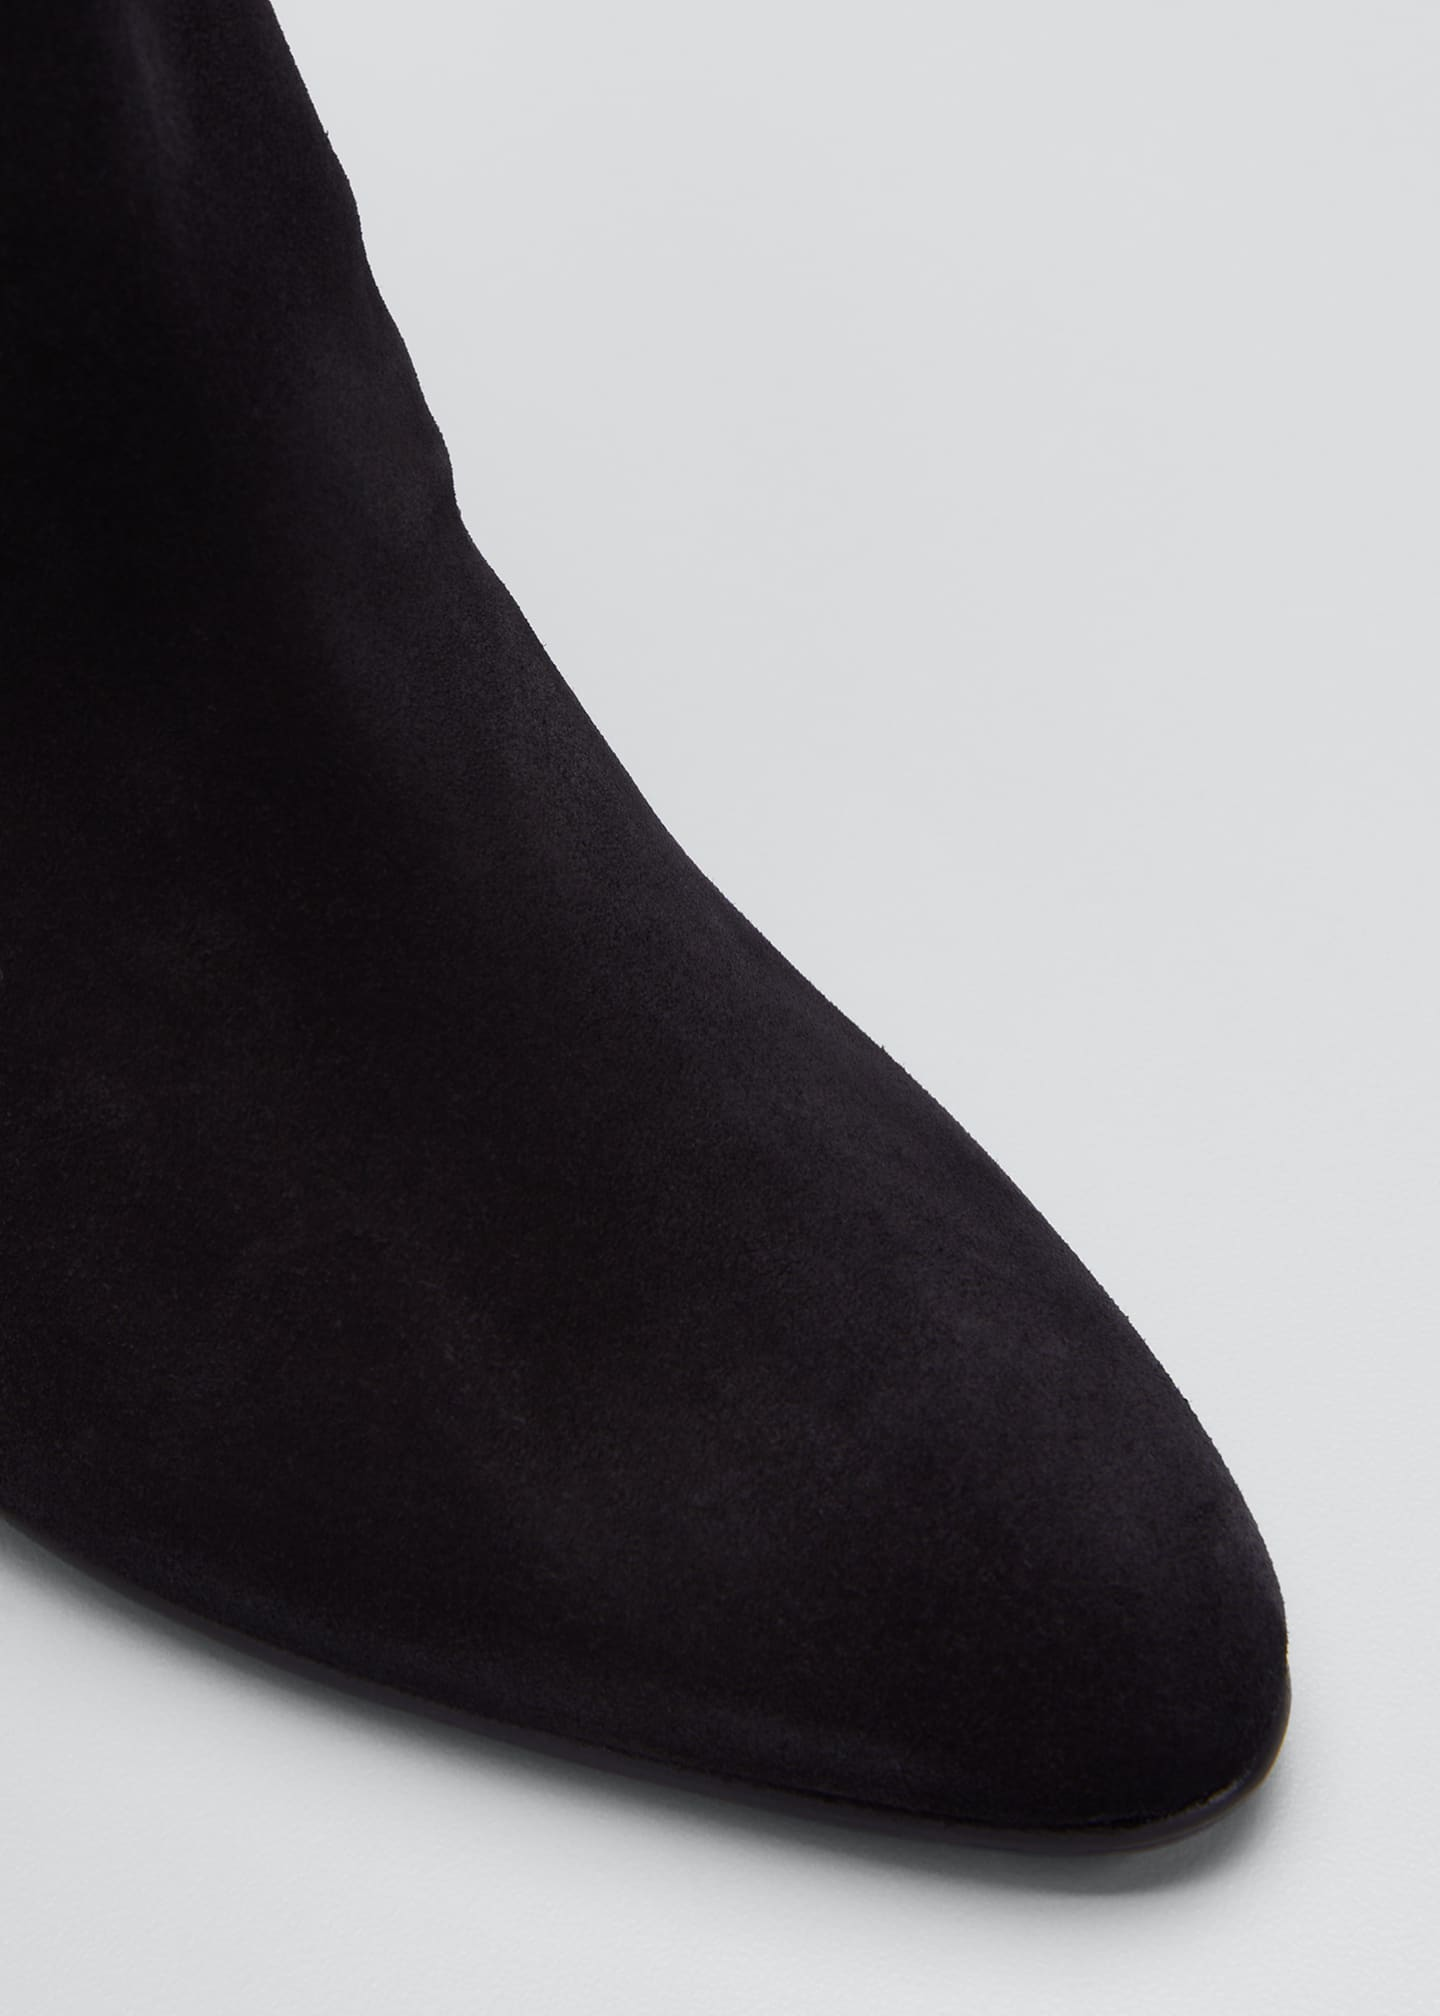 Image 3 of 3: Shushan 90mm Suede Scrunch Boots